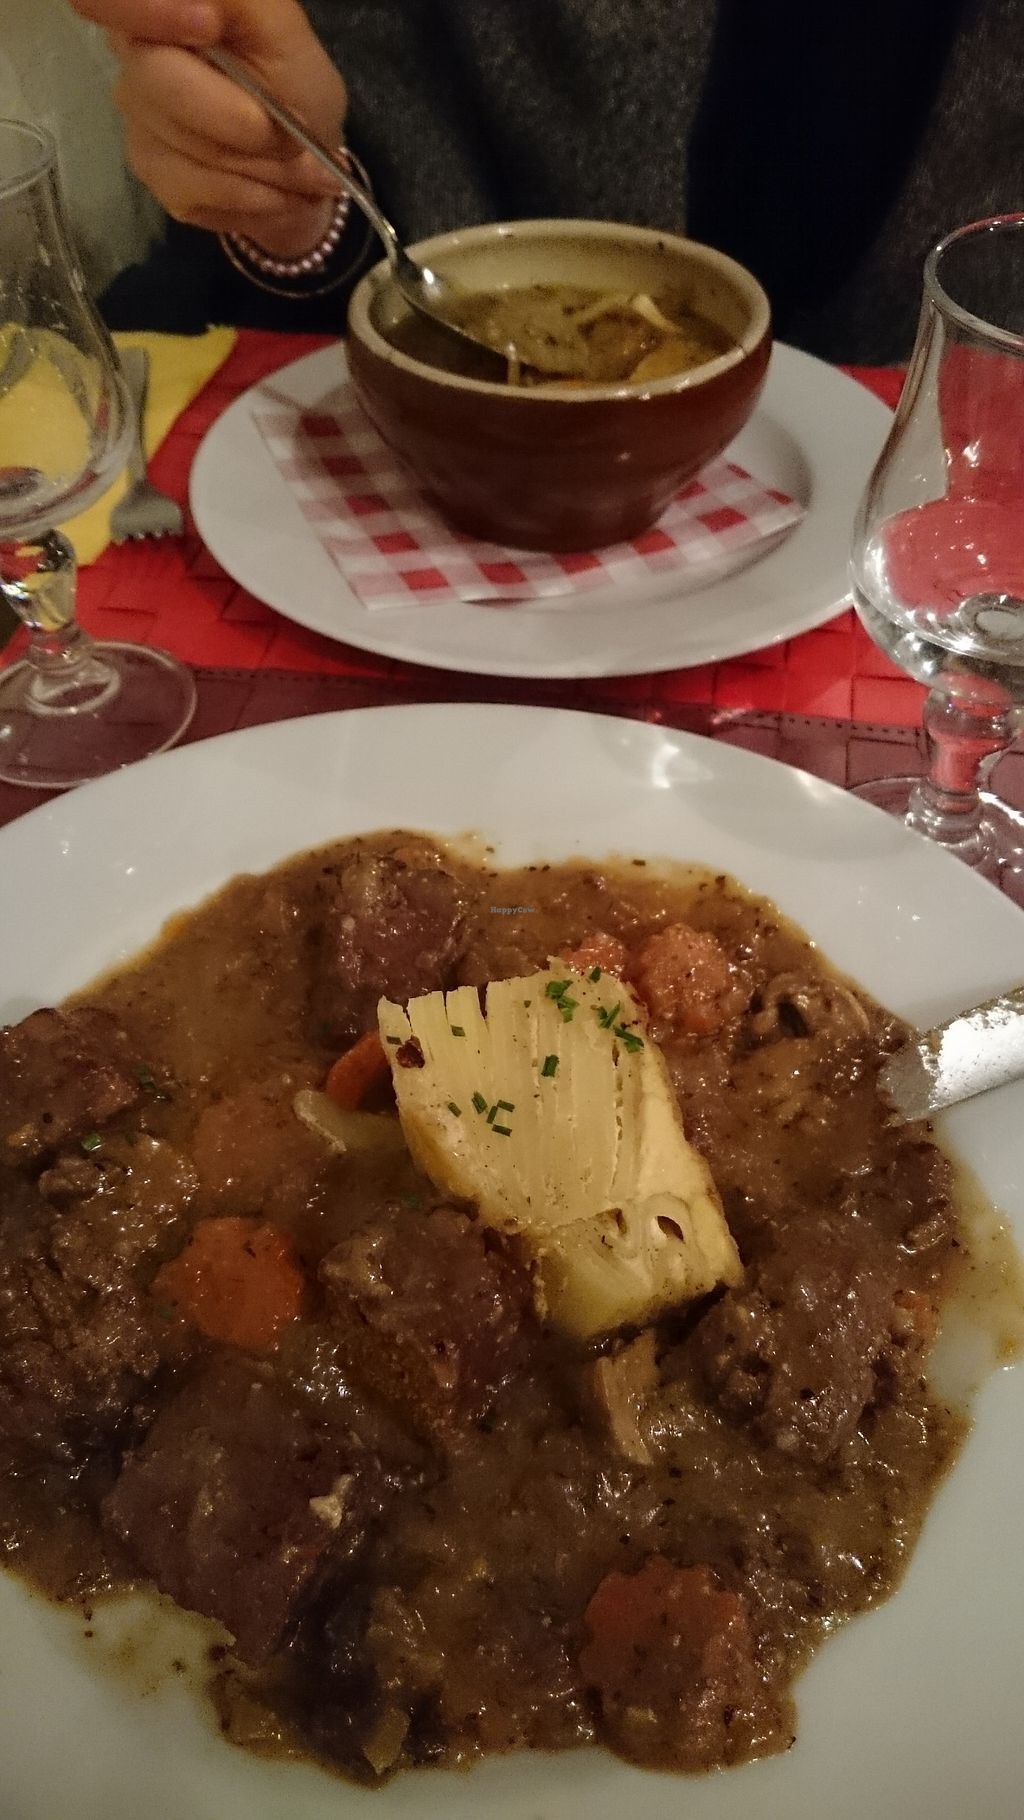 """Photo of Le Potager du Marais  by <a href=""""/members/profile/Layra"""">Layra</a> <br/>Bourgignon <br/> March 1, 2018  - <a href='/contact/abuse/image/4106/365503'>Report</a>"""